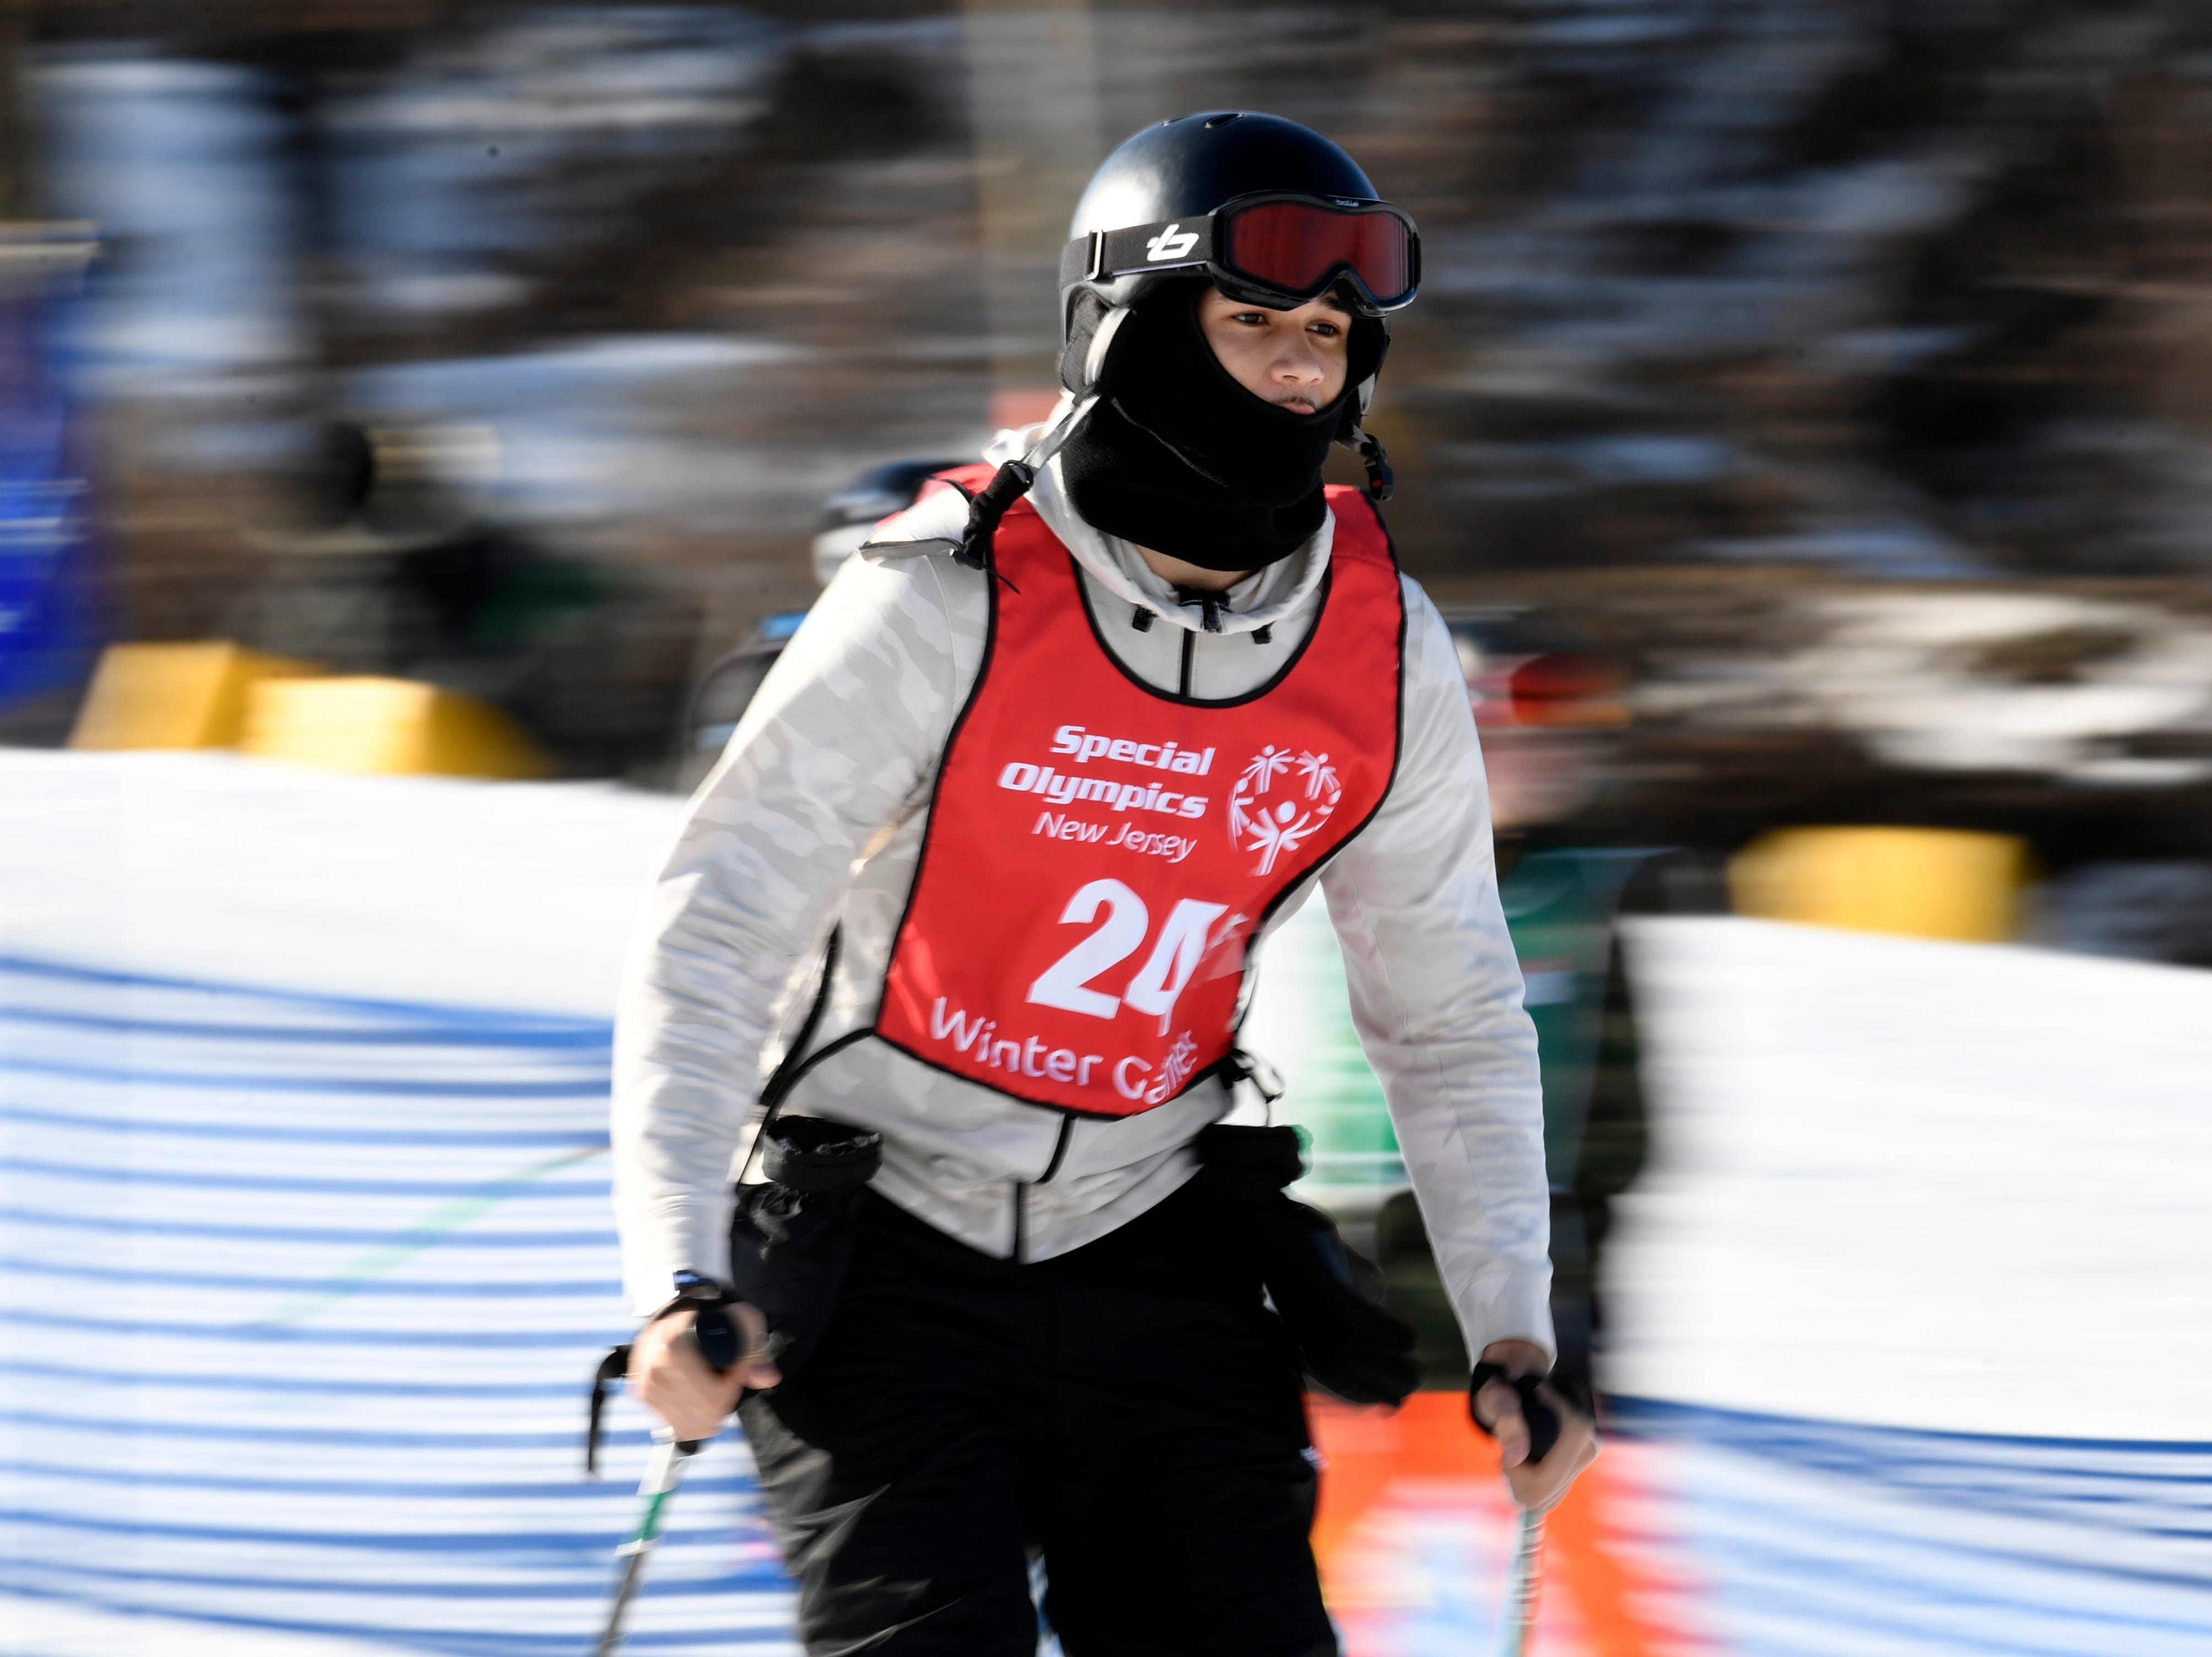 Nelson Monegro Breton of Union City competes in the giant slalom during the Special Olympics New Jersey 2019 Winter Games on Tuesday, Feb. 5, 2019, in Vernon.